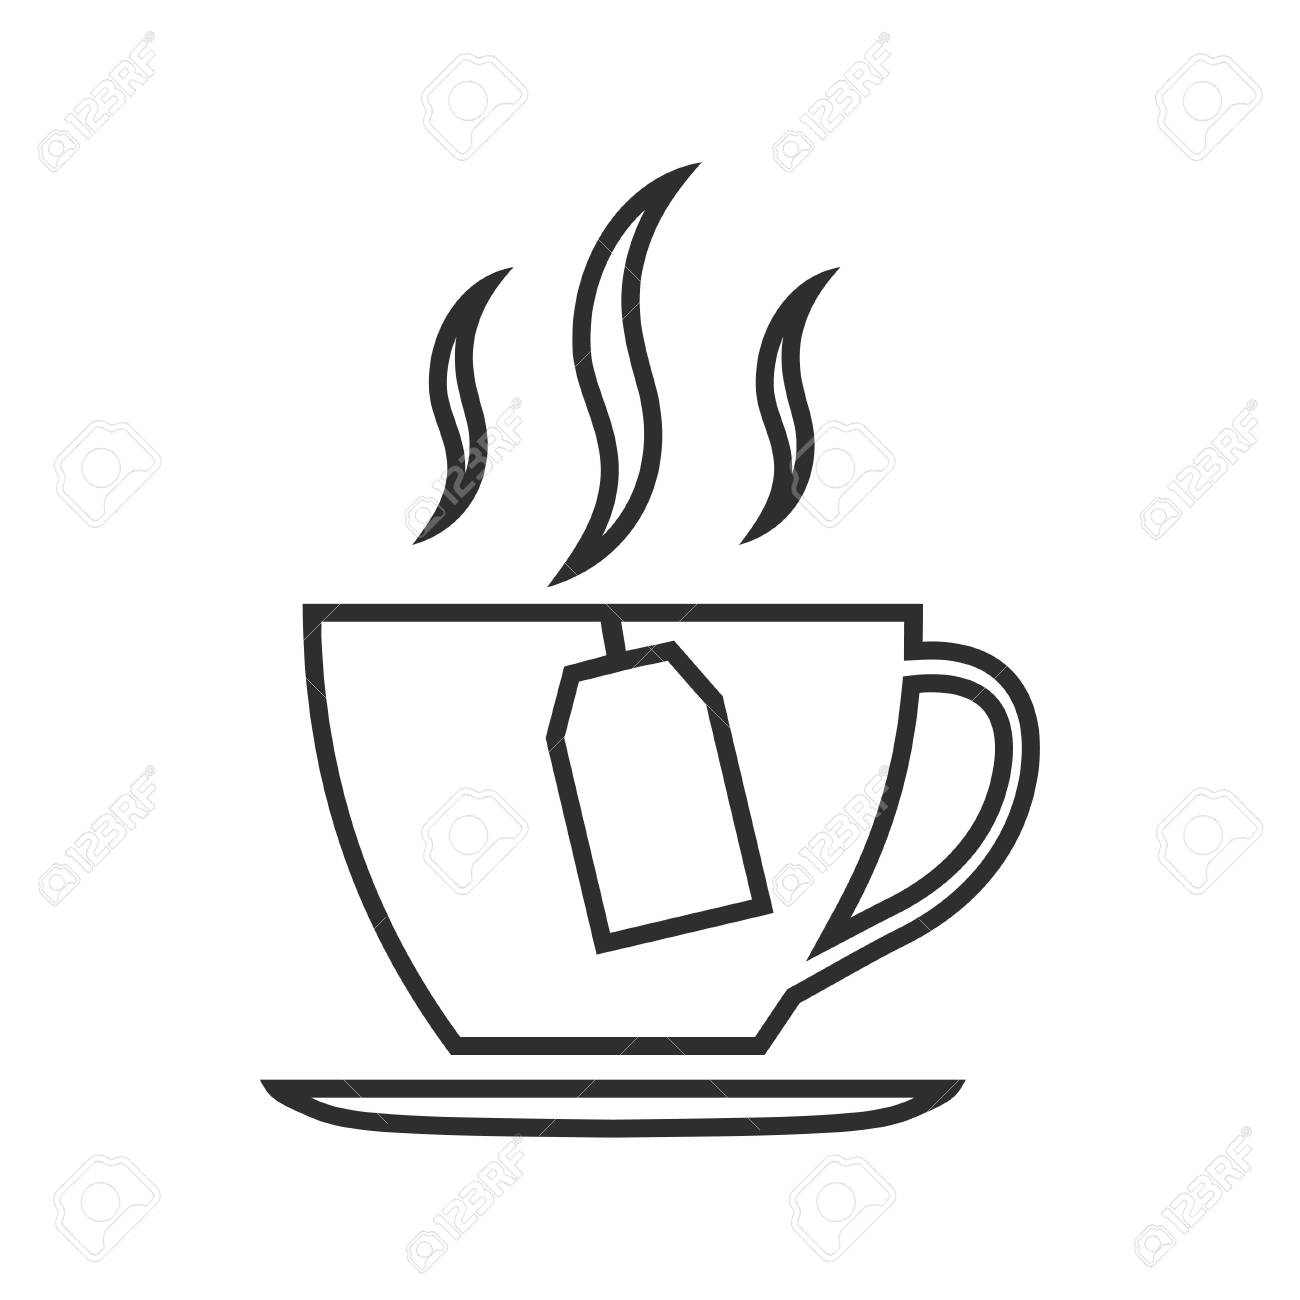 tea vector icon black illustration isolated on white background royalty free cliparts vectors and stock illustration image 64263586 tea vector icon black illustration isolated on white background